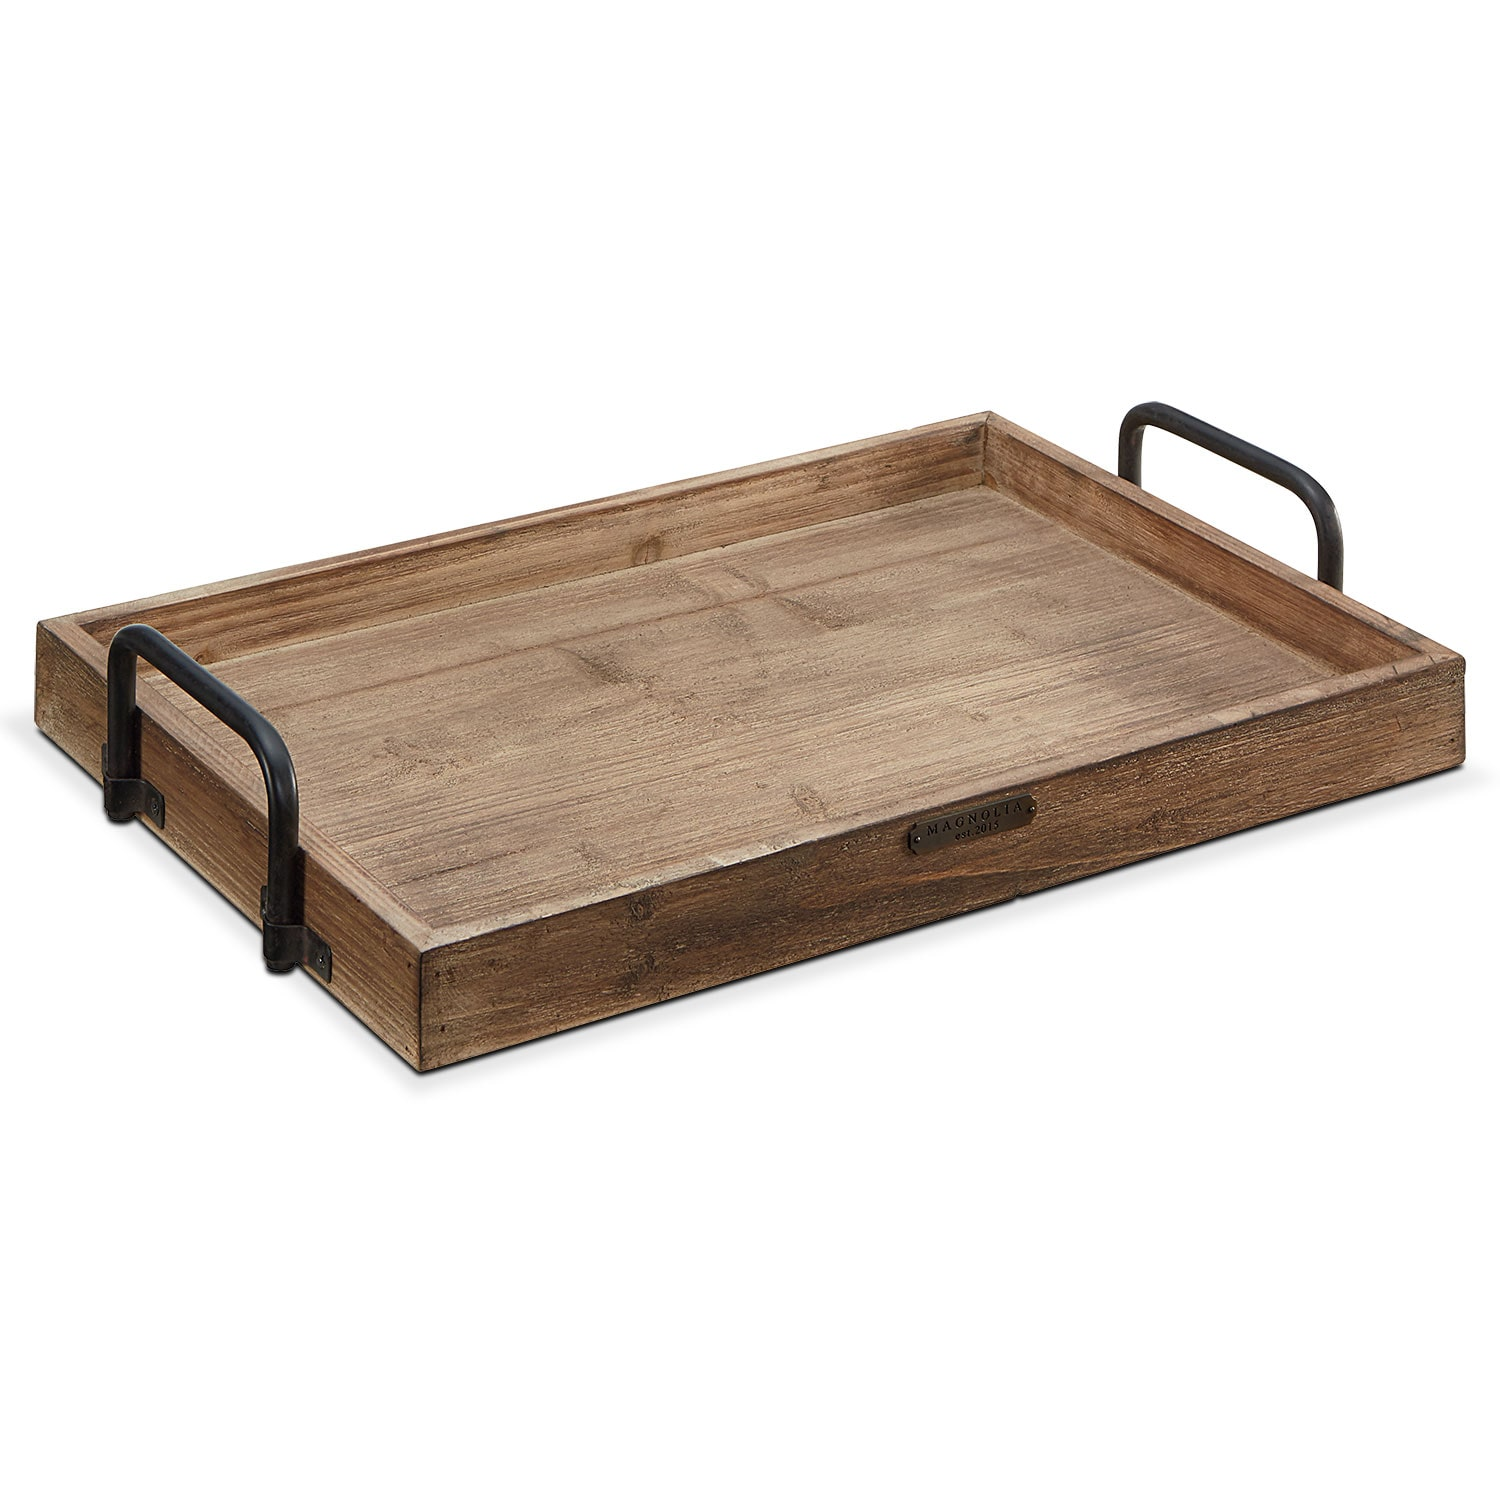 Home Accessories - Breakfast Tray - Black Handles